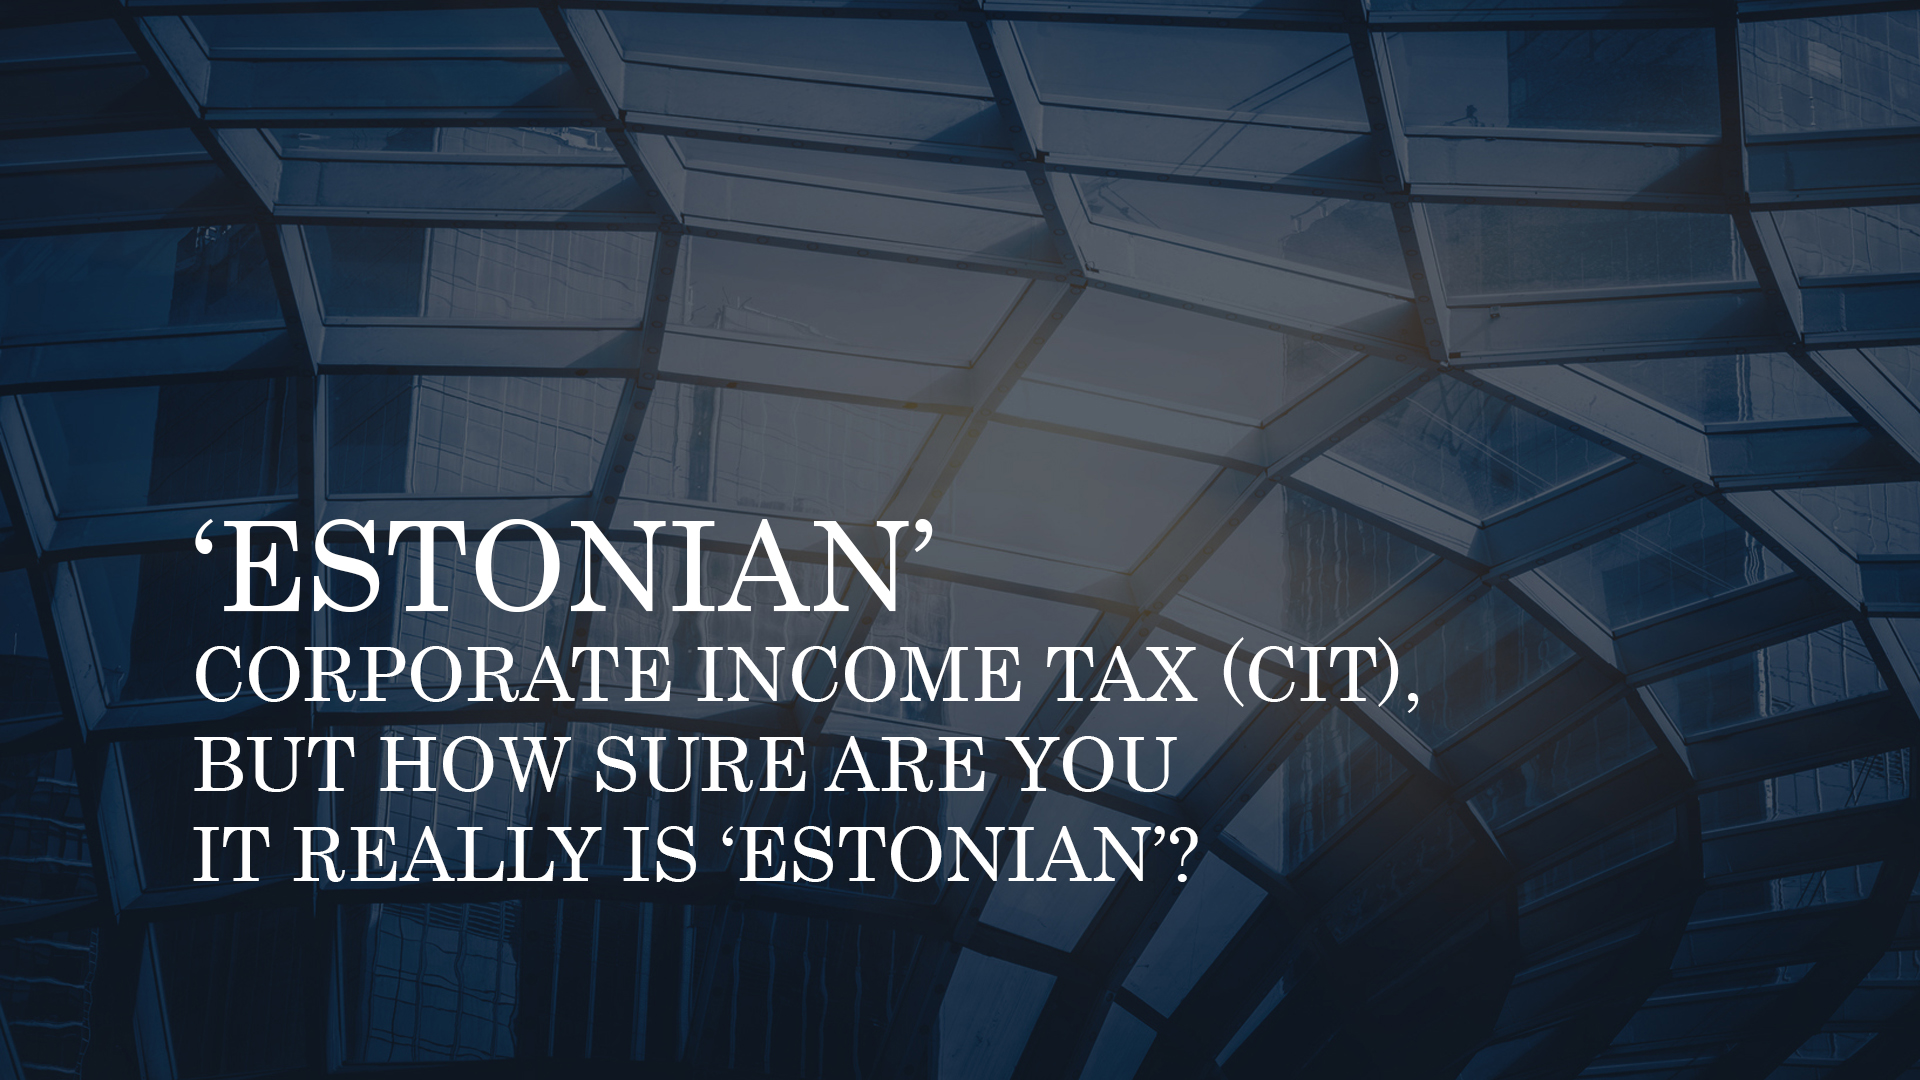 ESTONIAN CIT – EFFECTIVE REDUCTION IN CORPORATE TAX IN POLAND